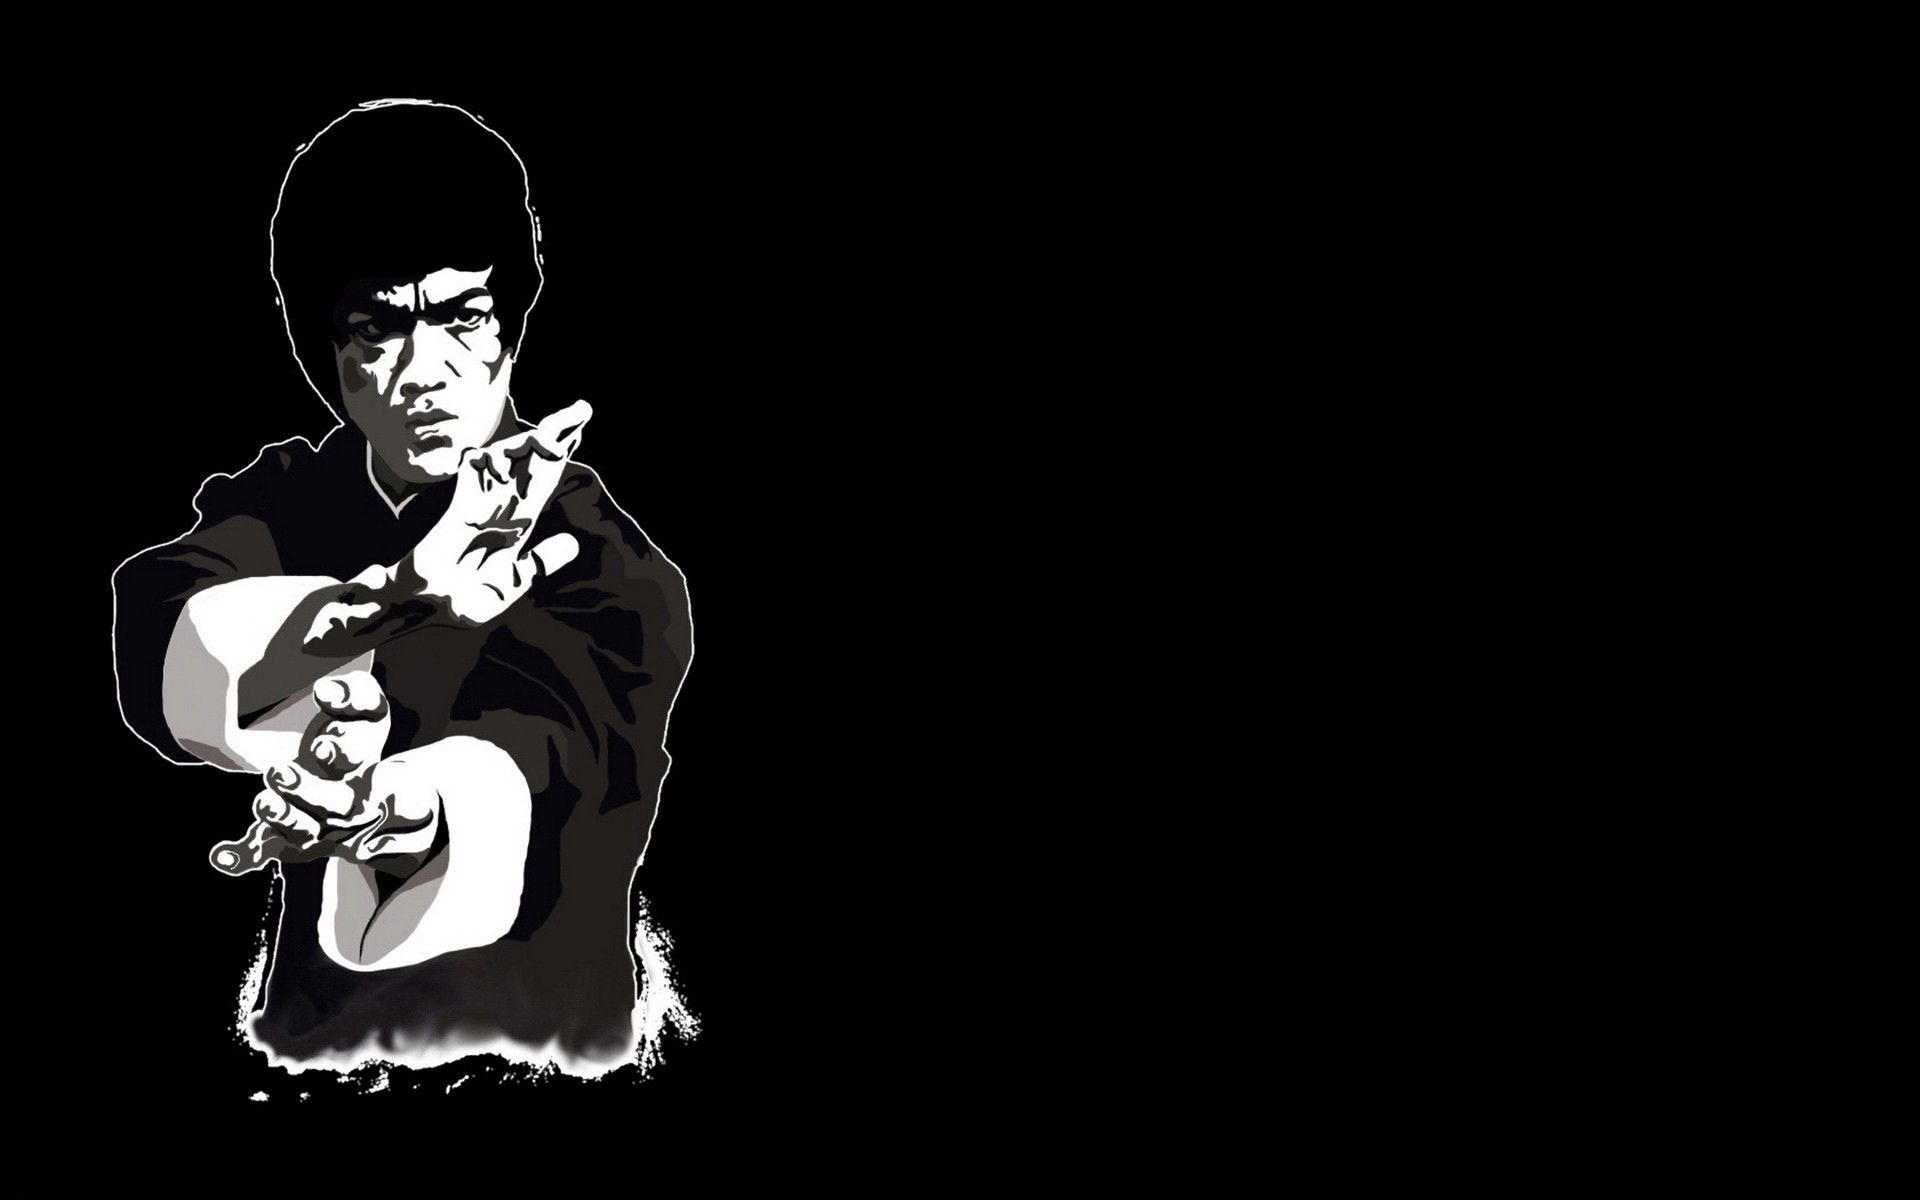 Bruce lee hd wallpaper for android free download on mobomarket bruce lee hd wallpaper for android free download on mobomarket voltagebd Gallery